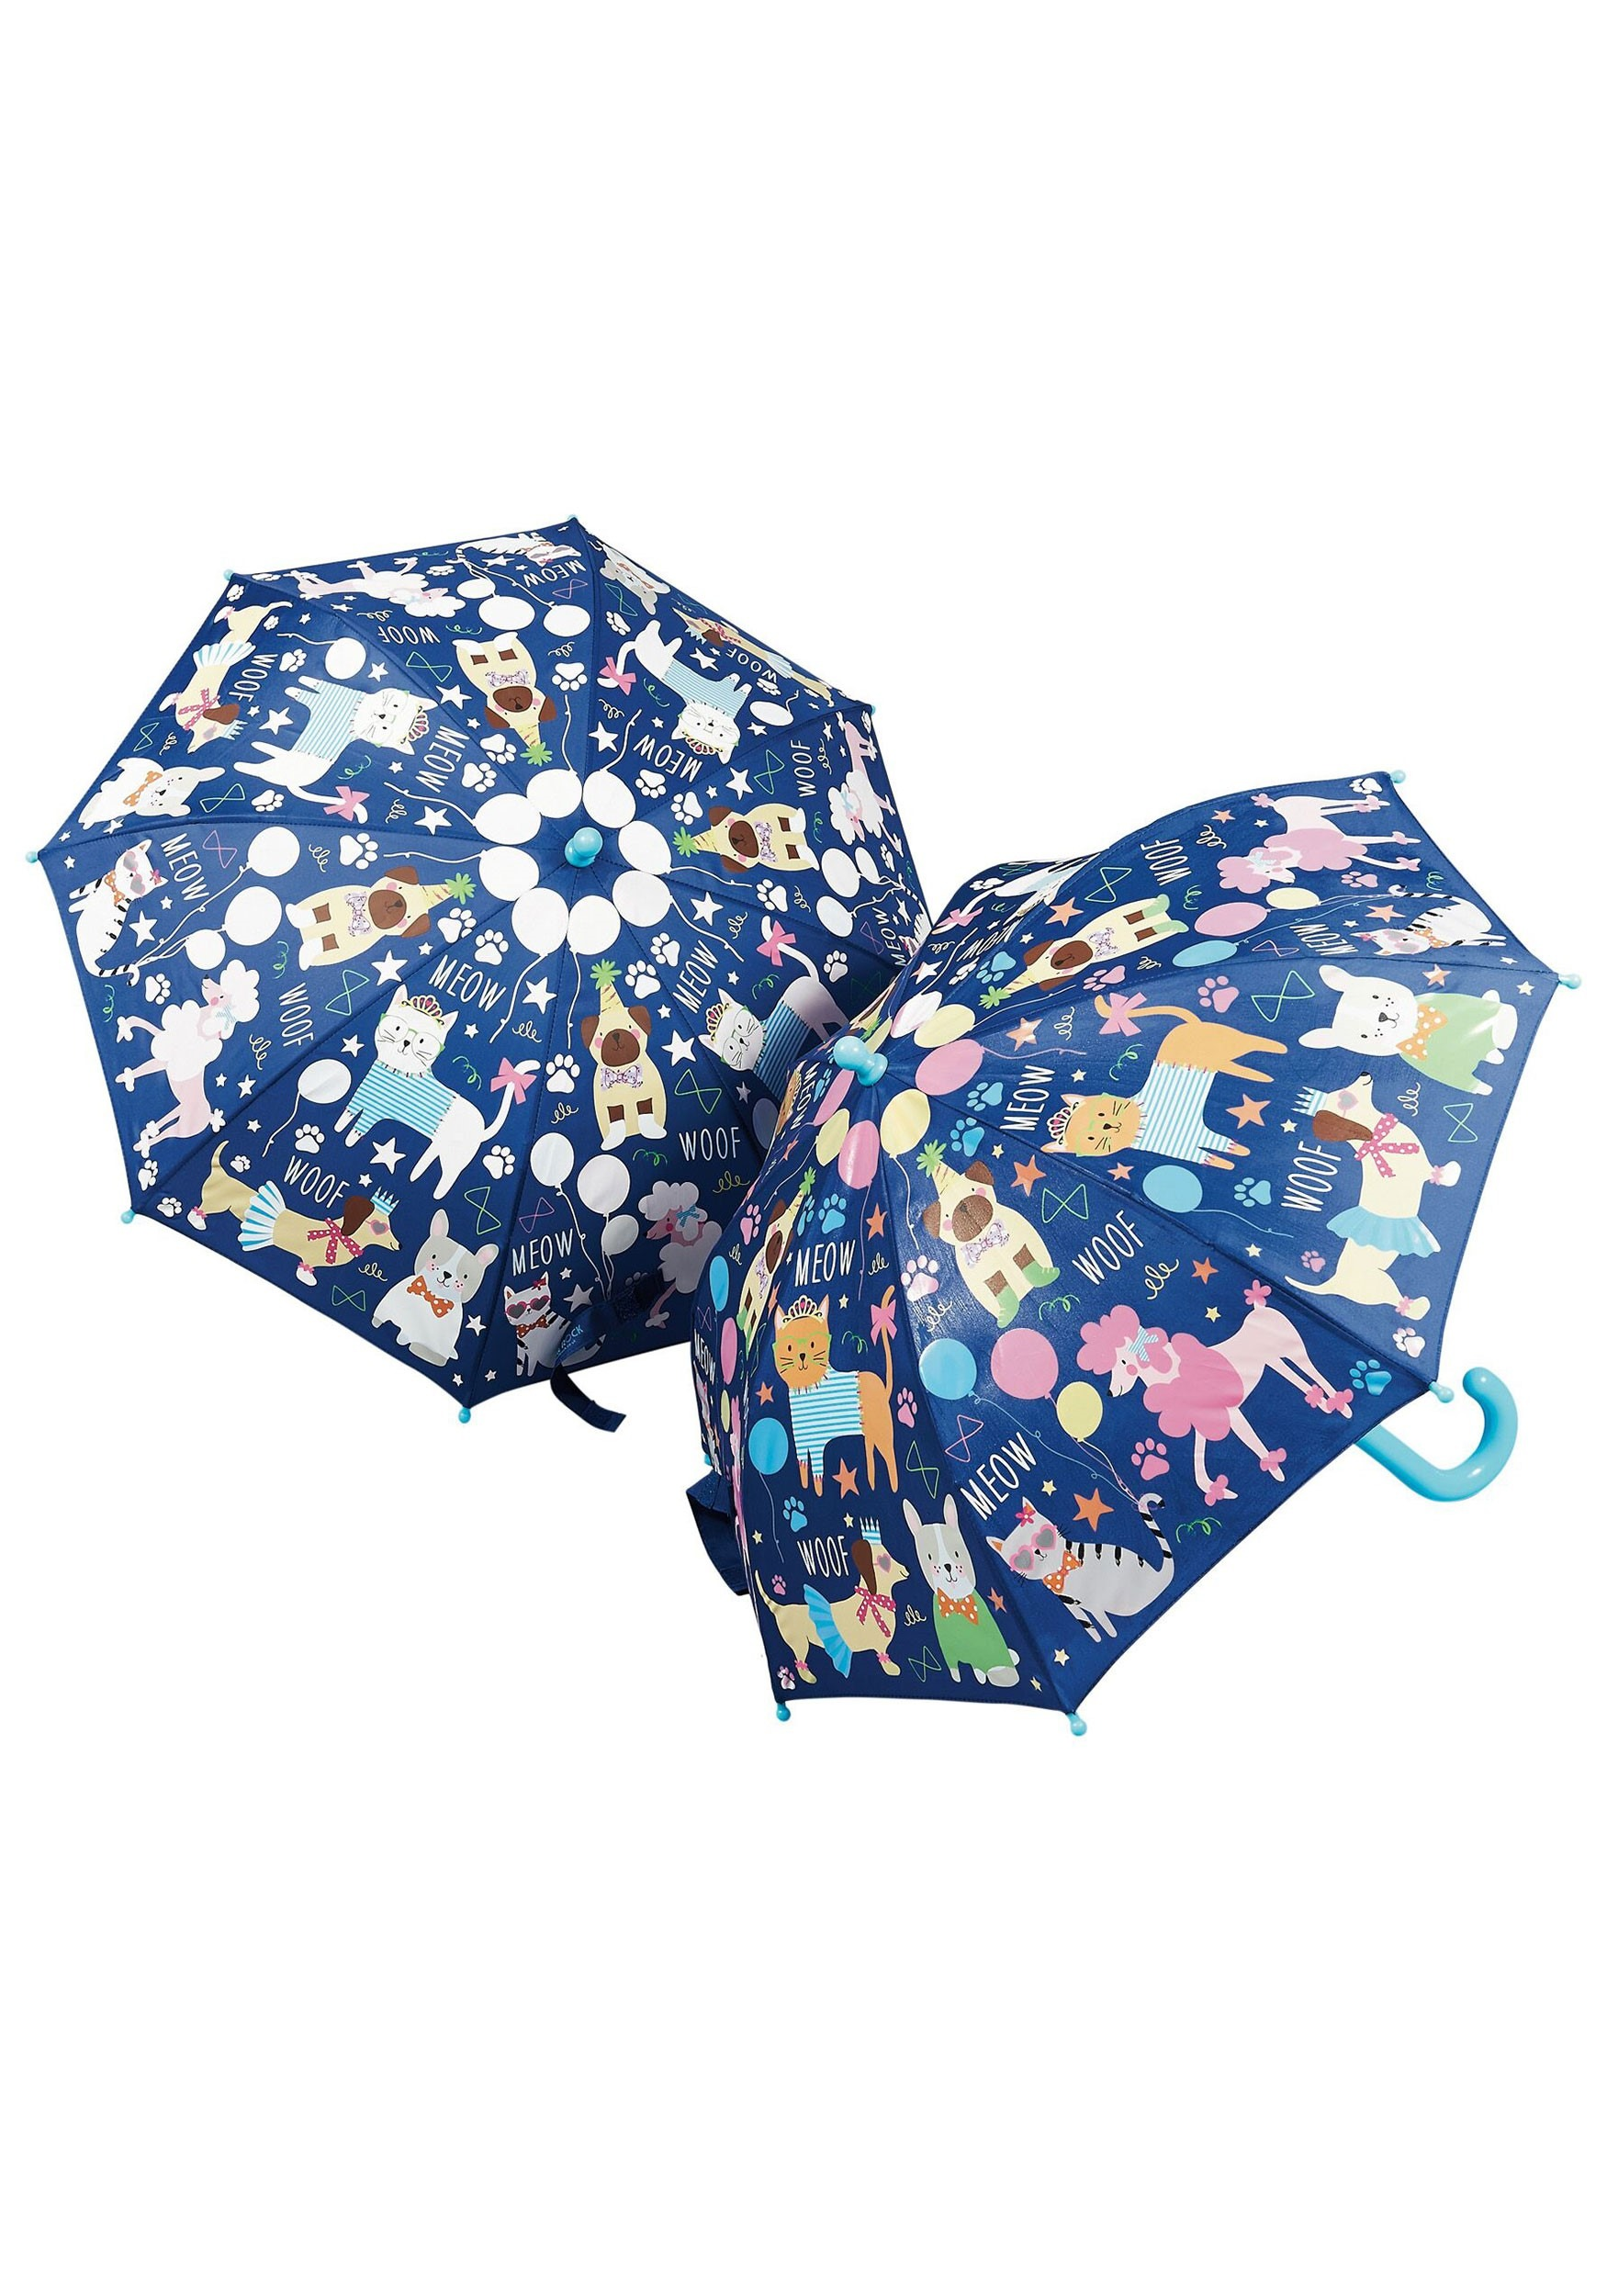 (Dogs and Cats) Pets Print Color Changing Umbrella